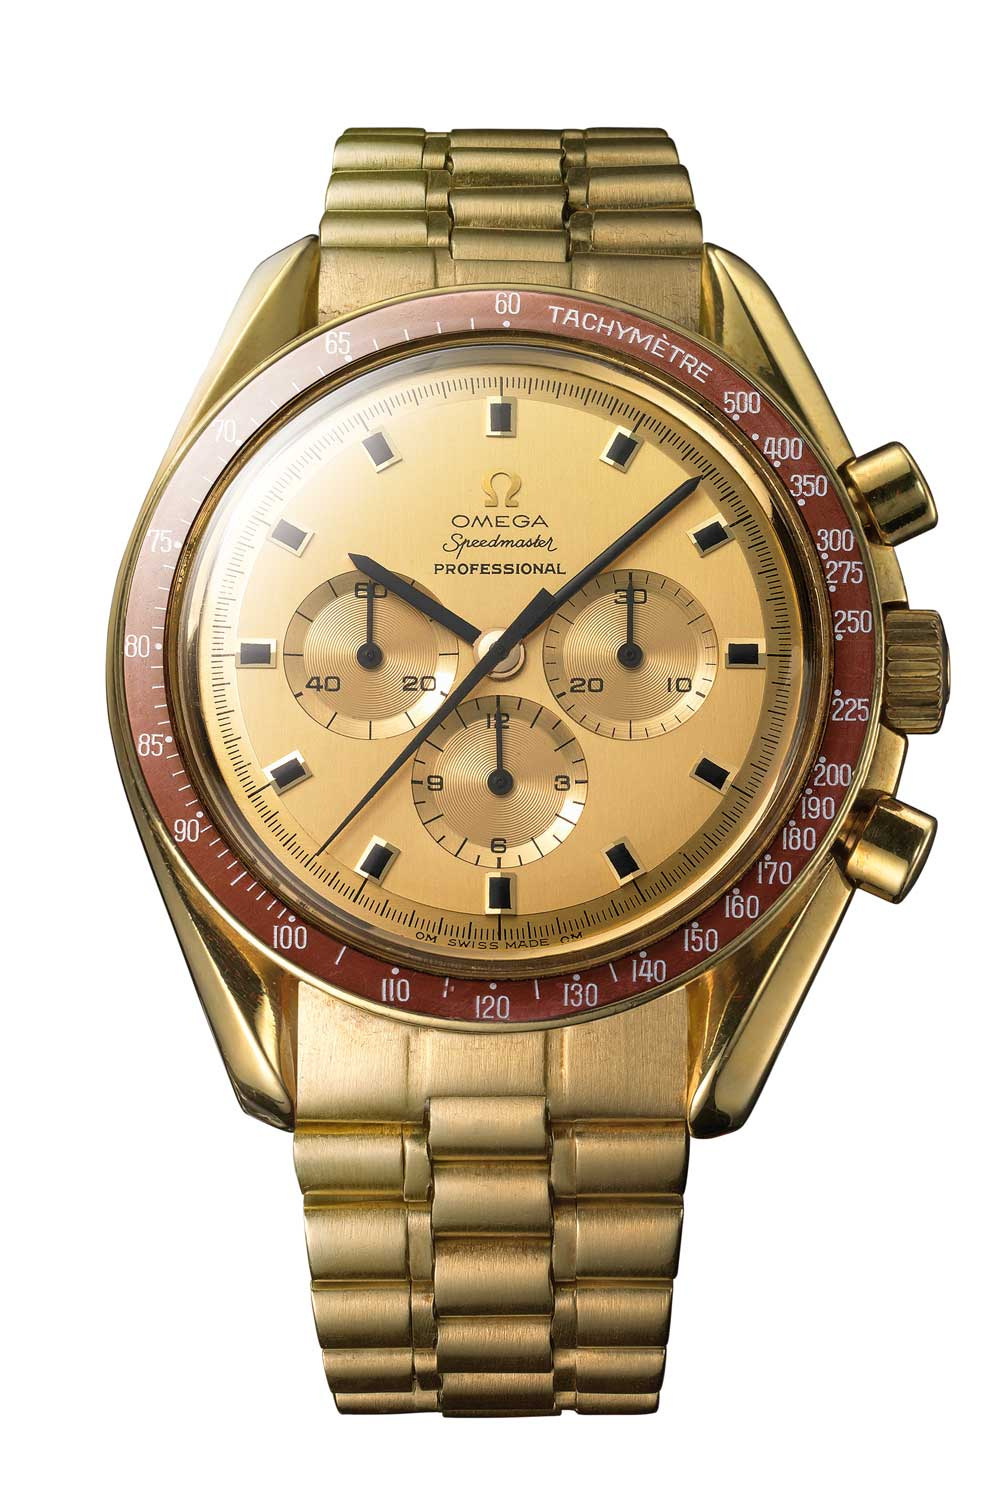 Gold models of the Speedmaster created in 1969 to commemorate the achievements of the Apollo 11 crew. This particular model is engraved for Spiro Agnew, then Vice-President of the United States